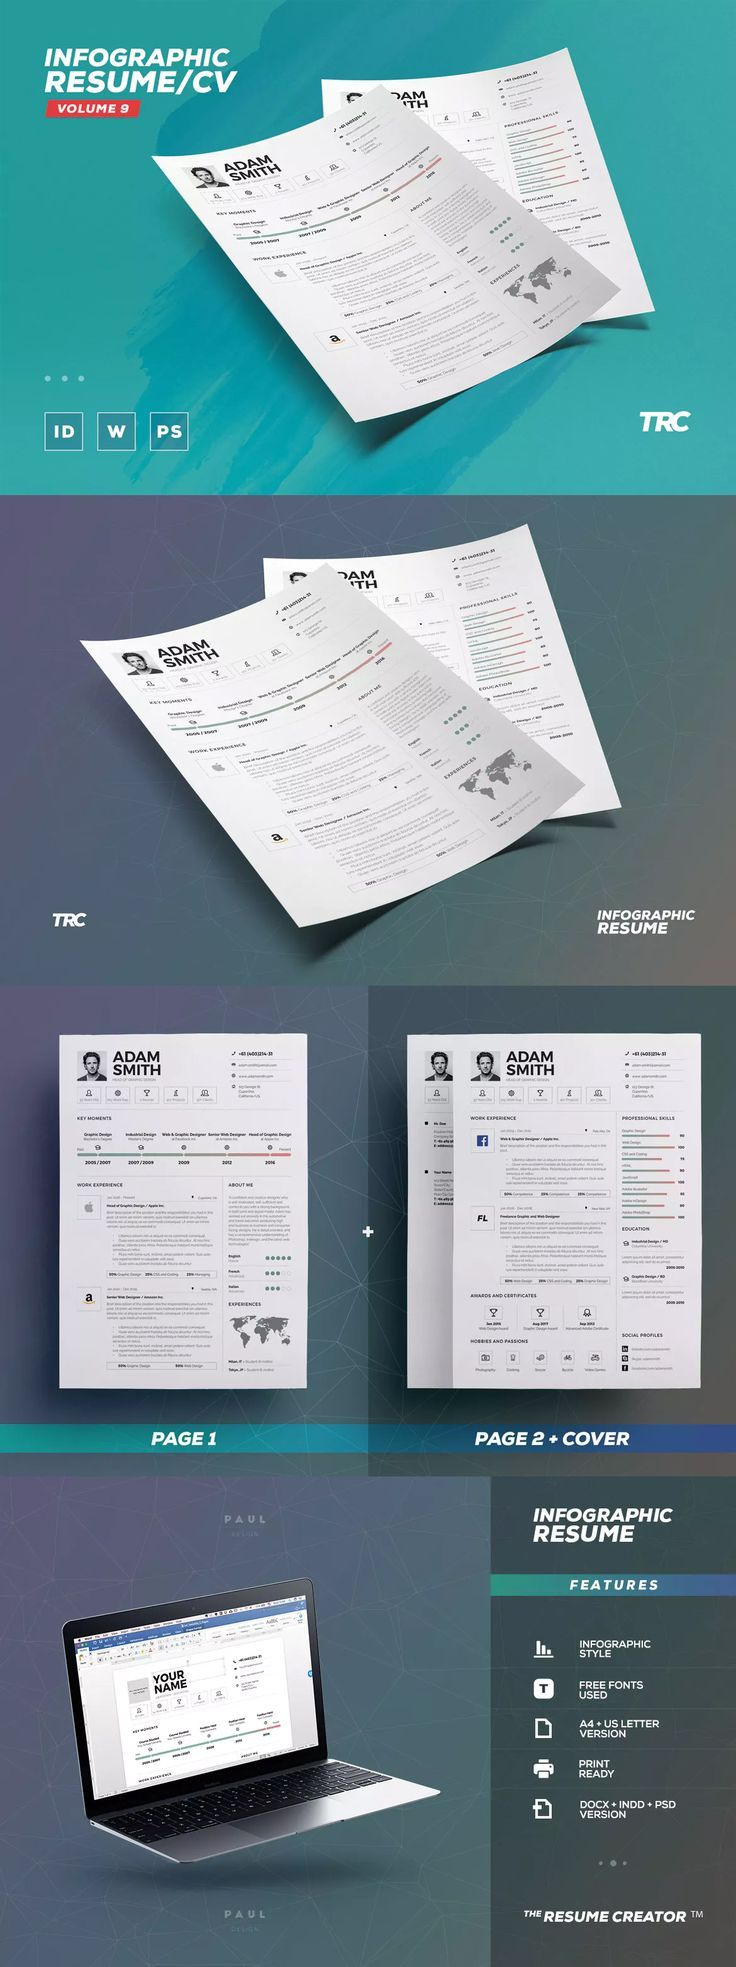 Resume Templates Infographic ResumeCv Template INDD